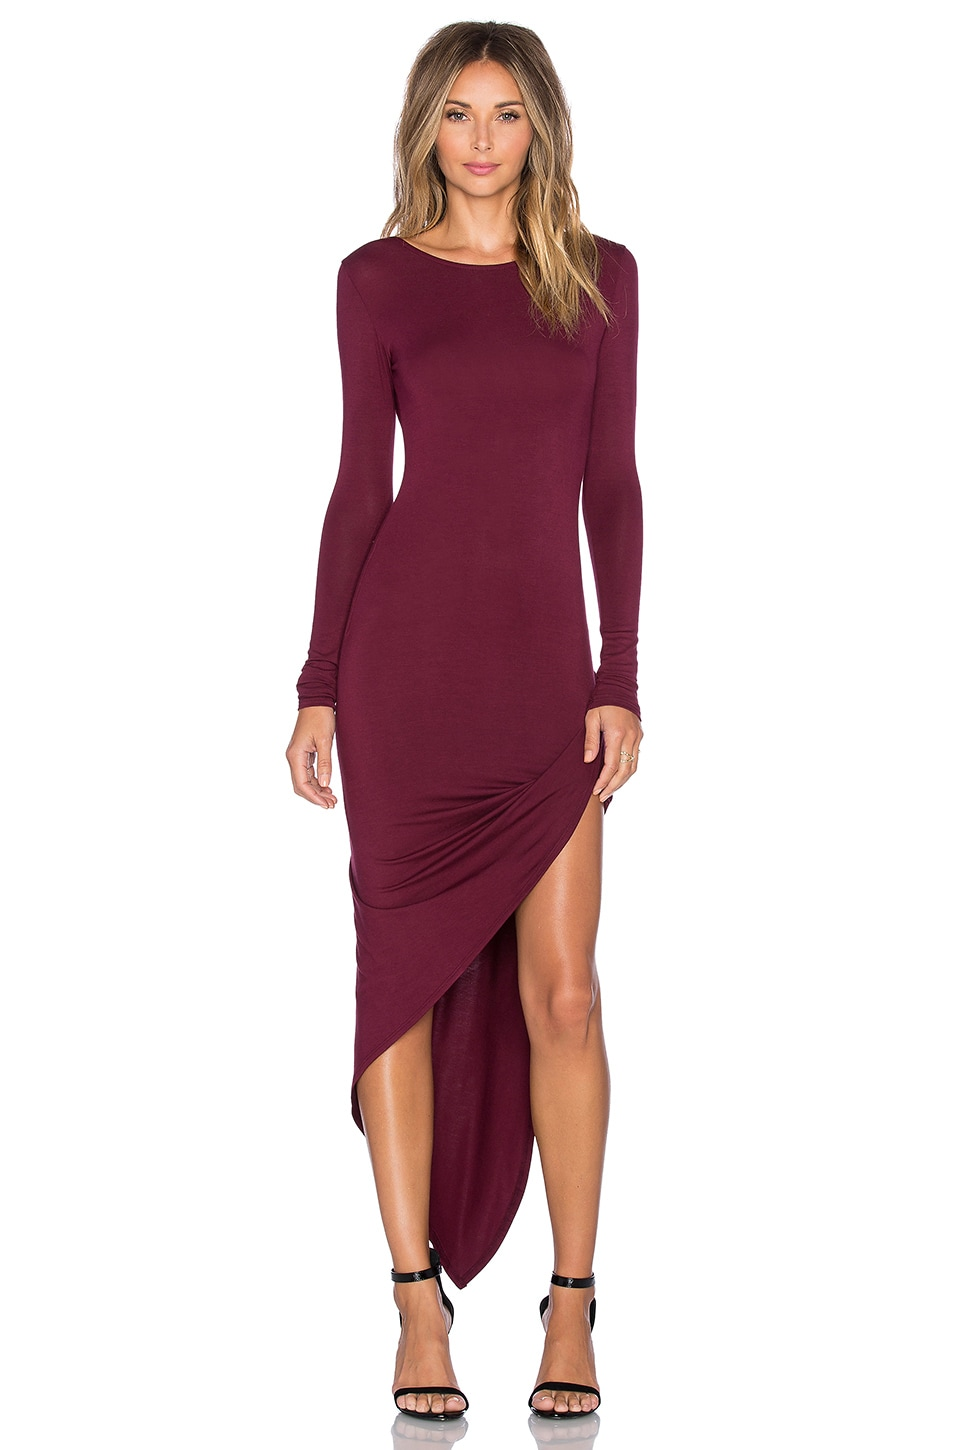 Sam Wrap Dress